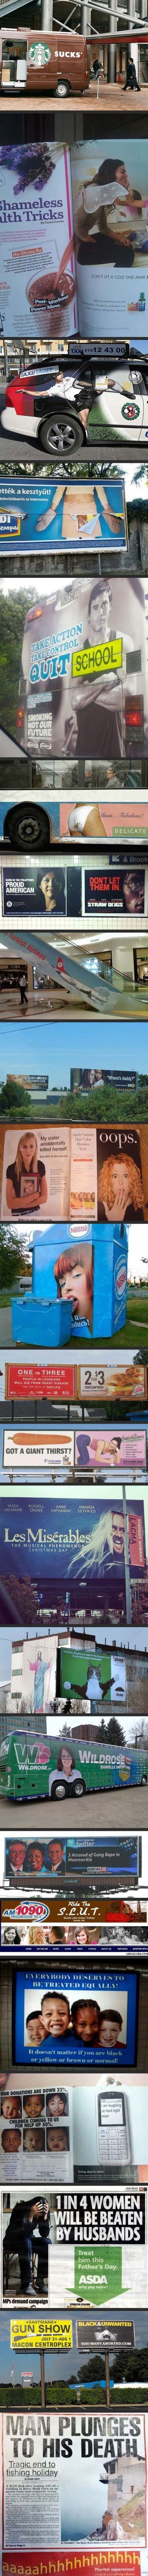 Hilarious advertising fails